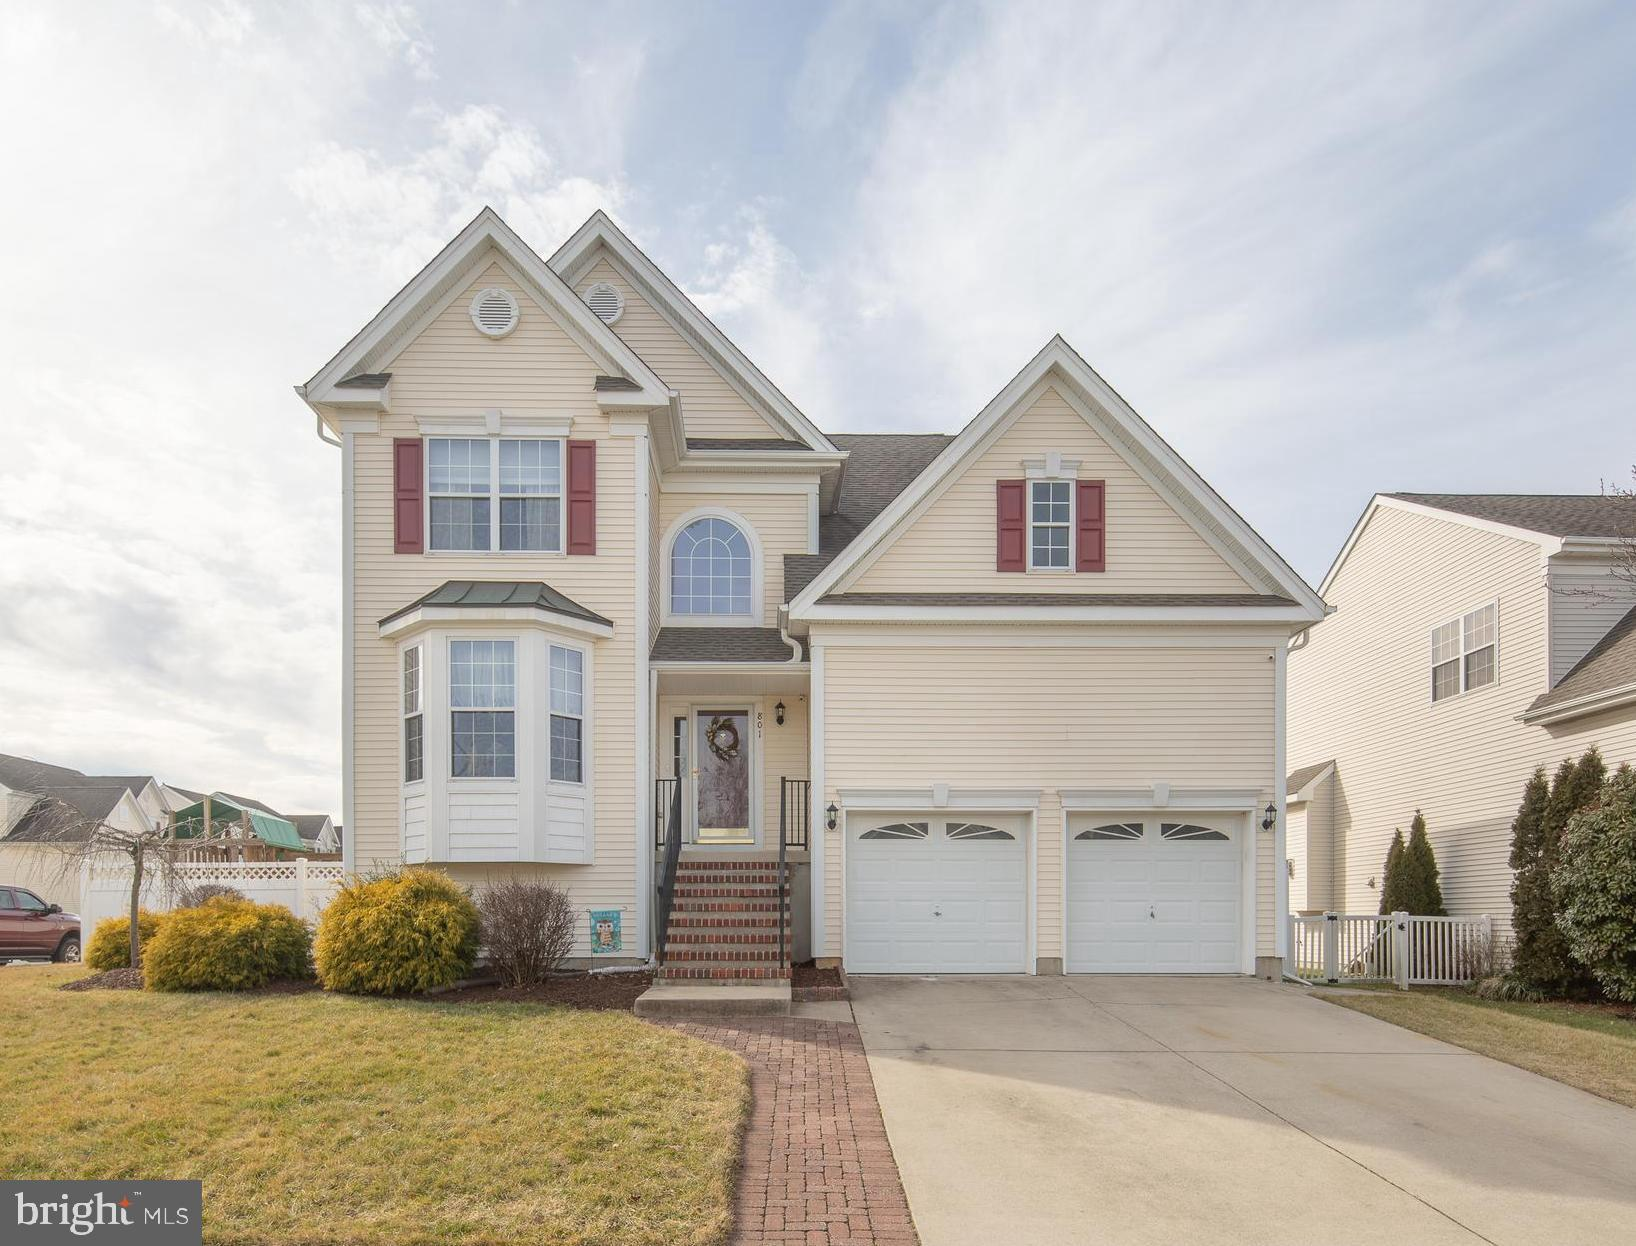 801 KENSINGTON DRIVE, WEST DEPTFORD, NJ 08086